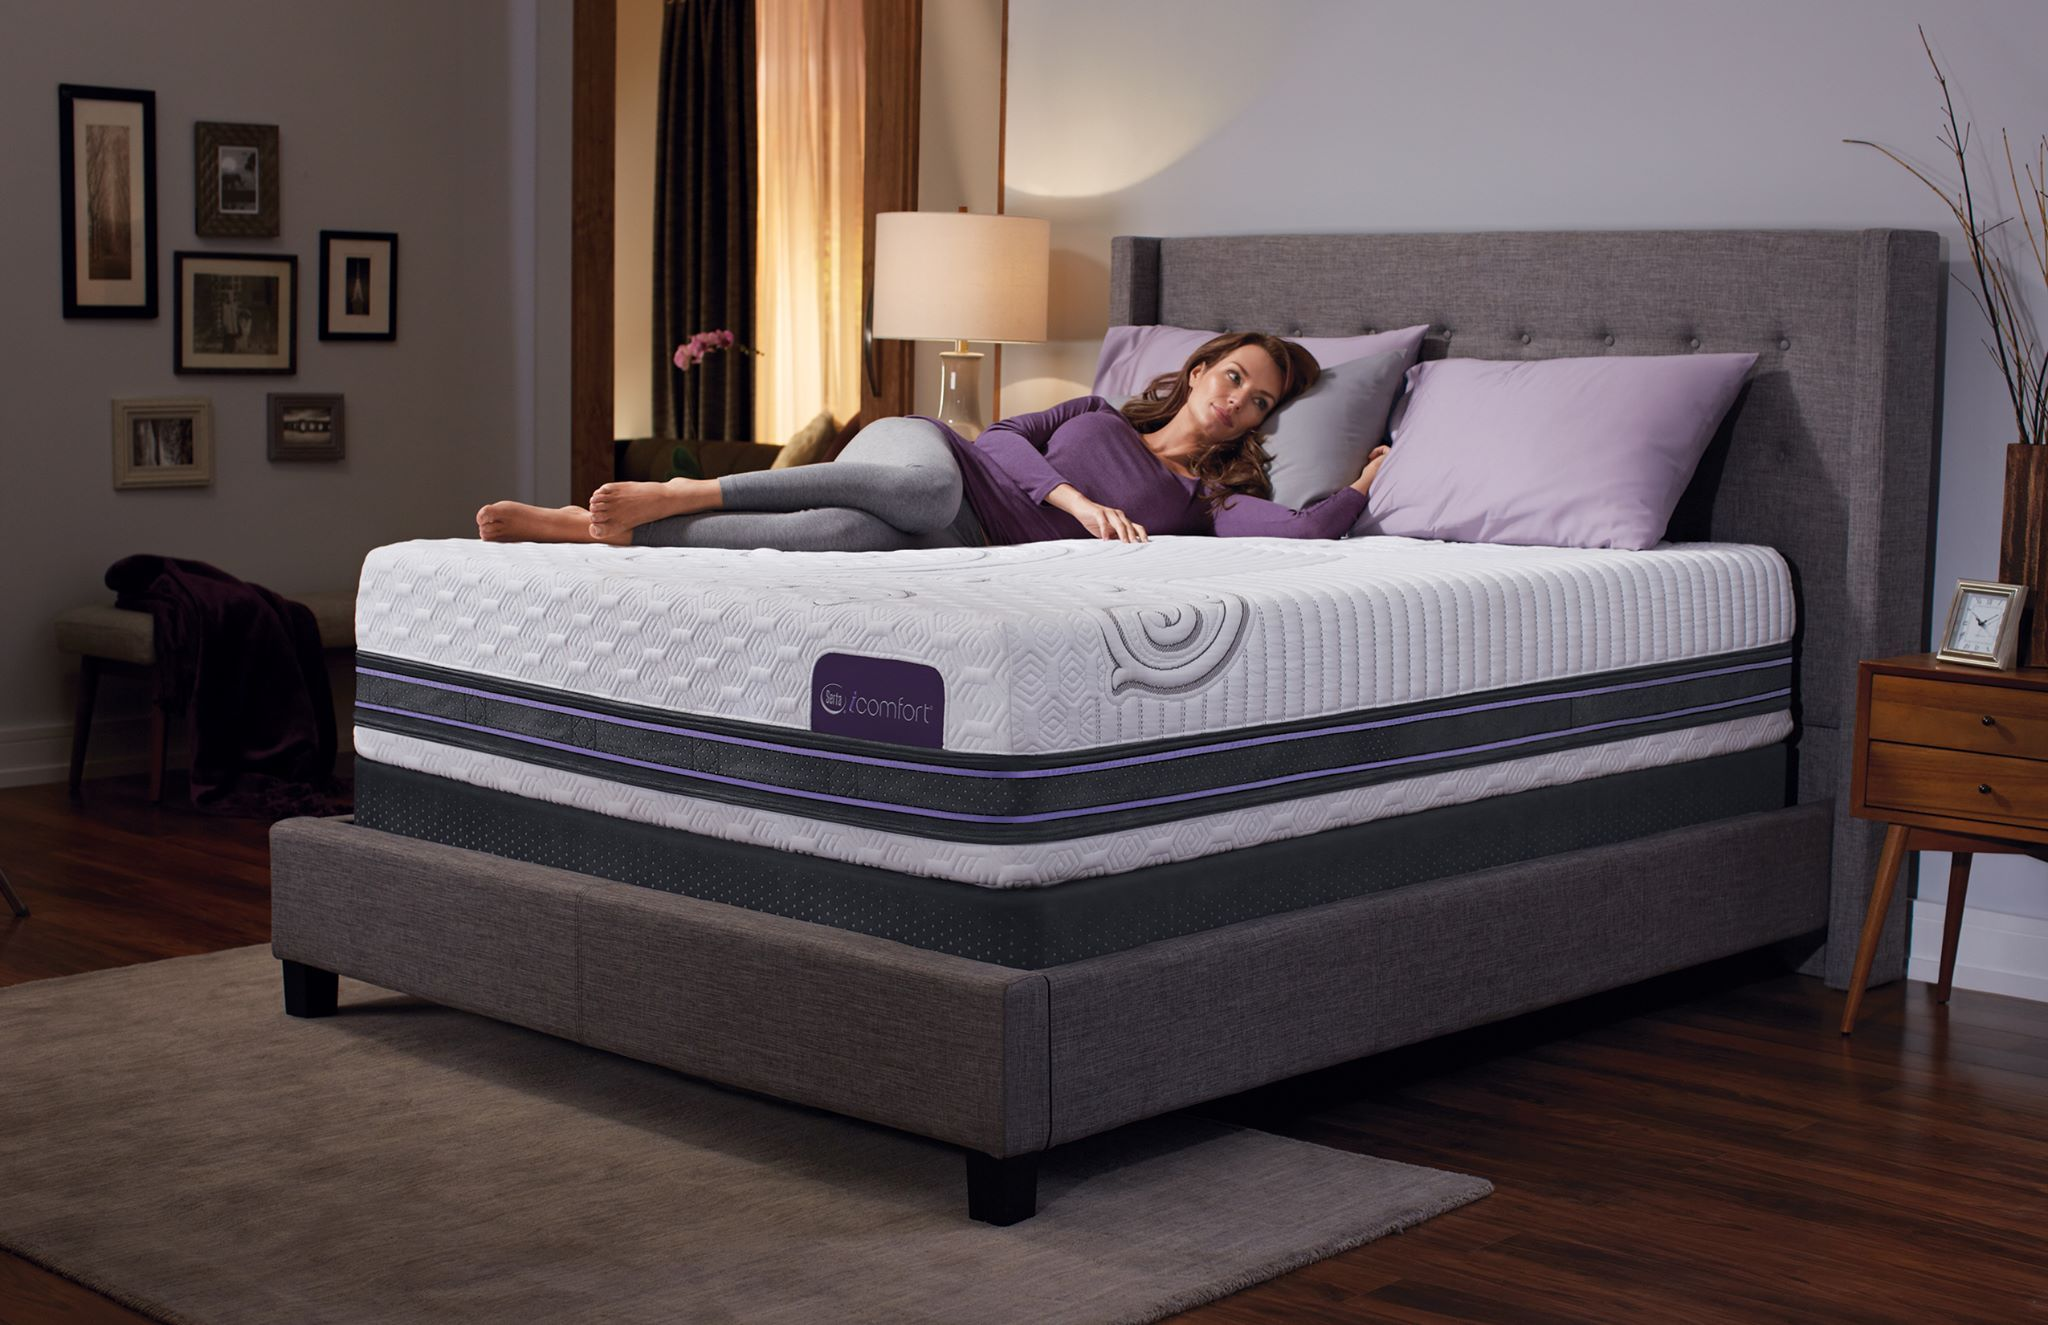 Get A Free Foundation Pillow And Serta Mattress Sheep With The